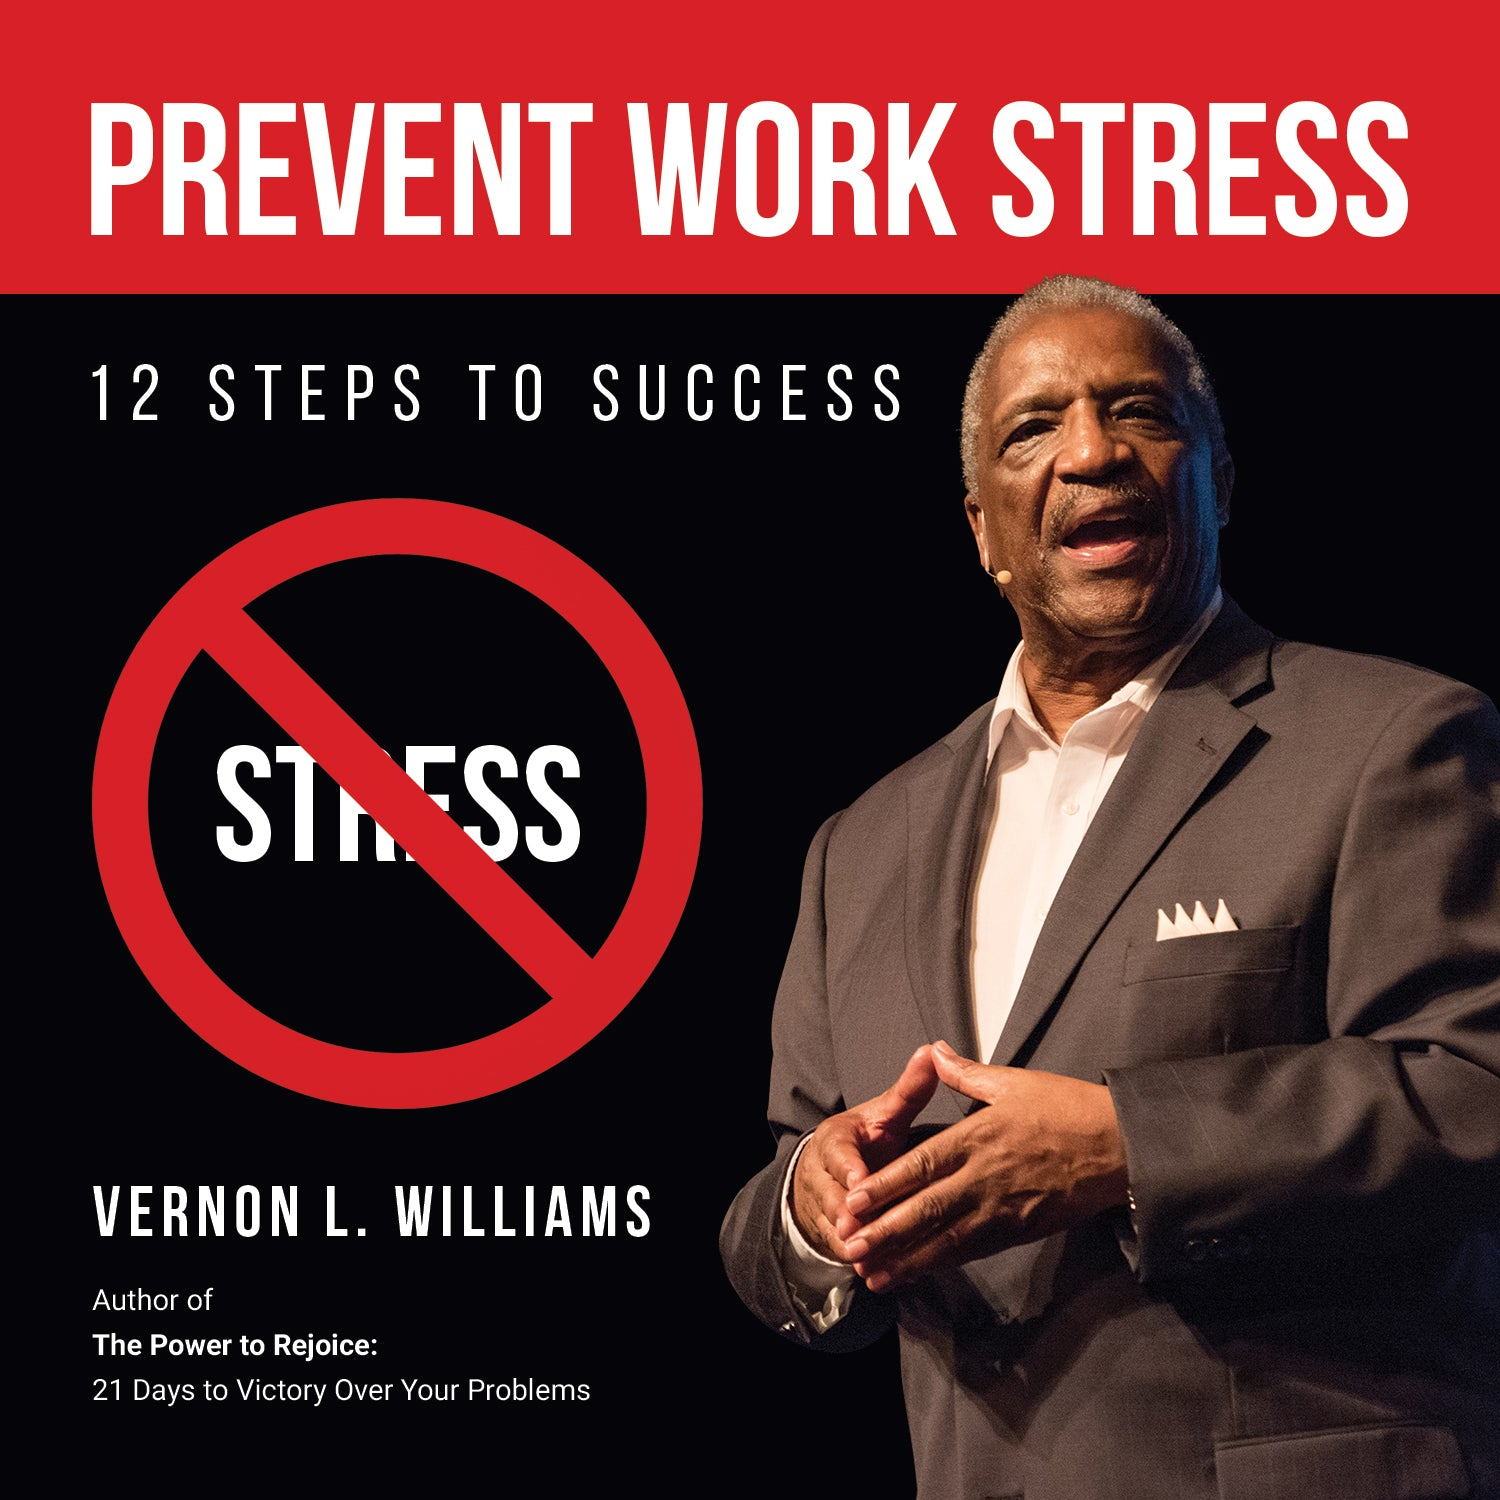 Prevent Work Stress Course